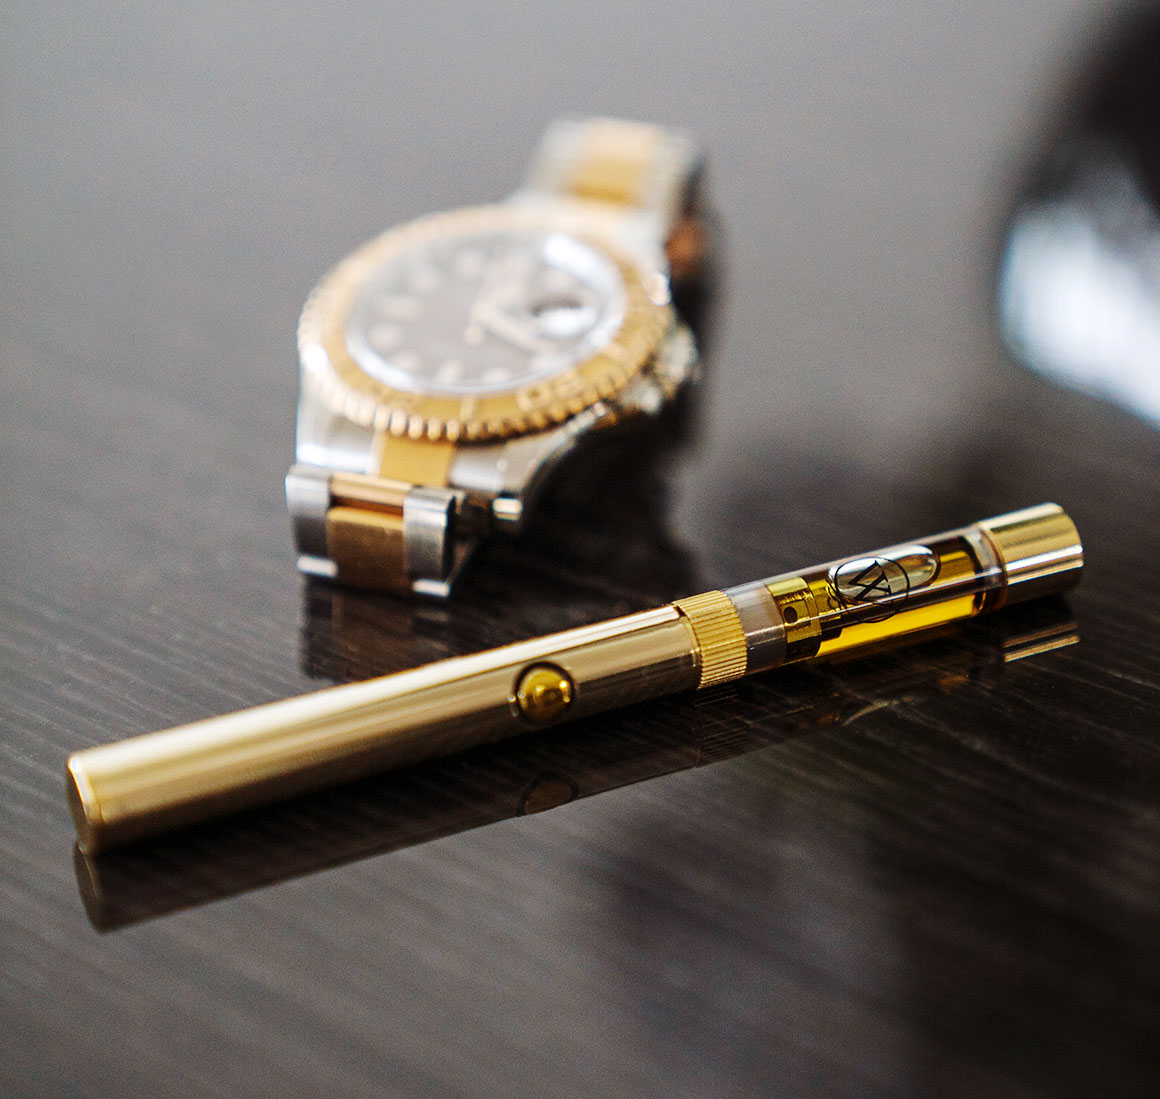 Westcoast Smoke Gold Digger Next To Gold Watch